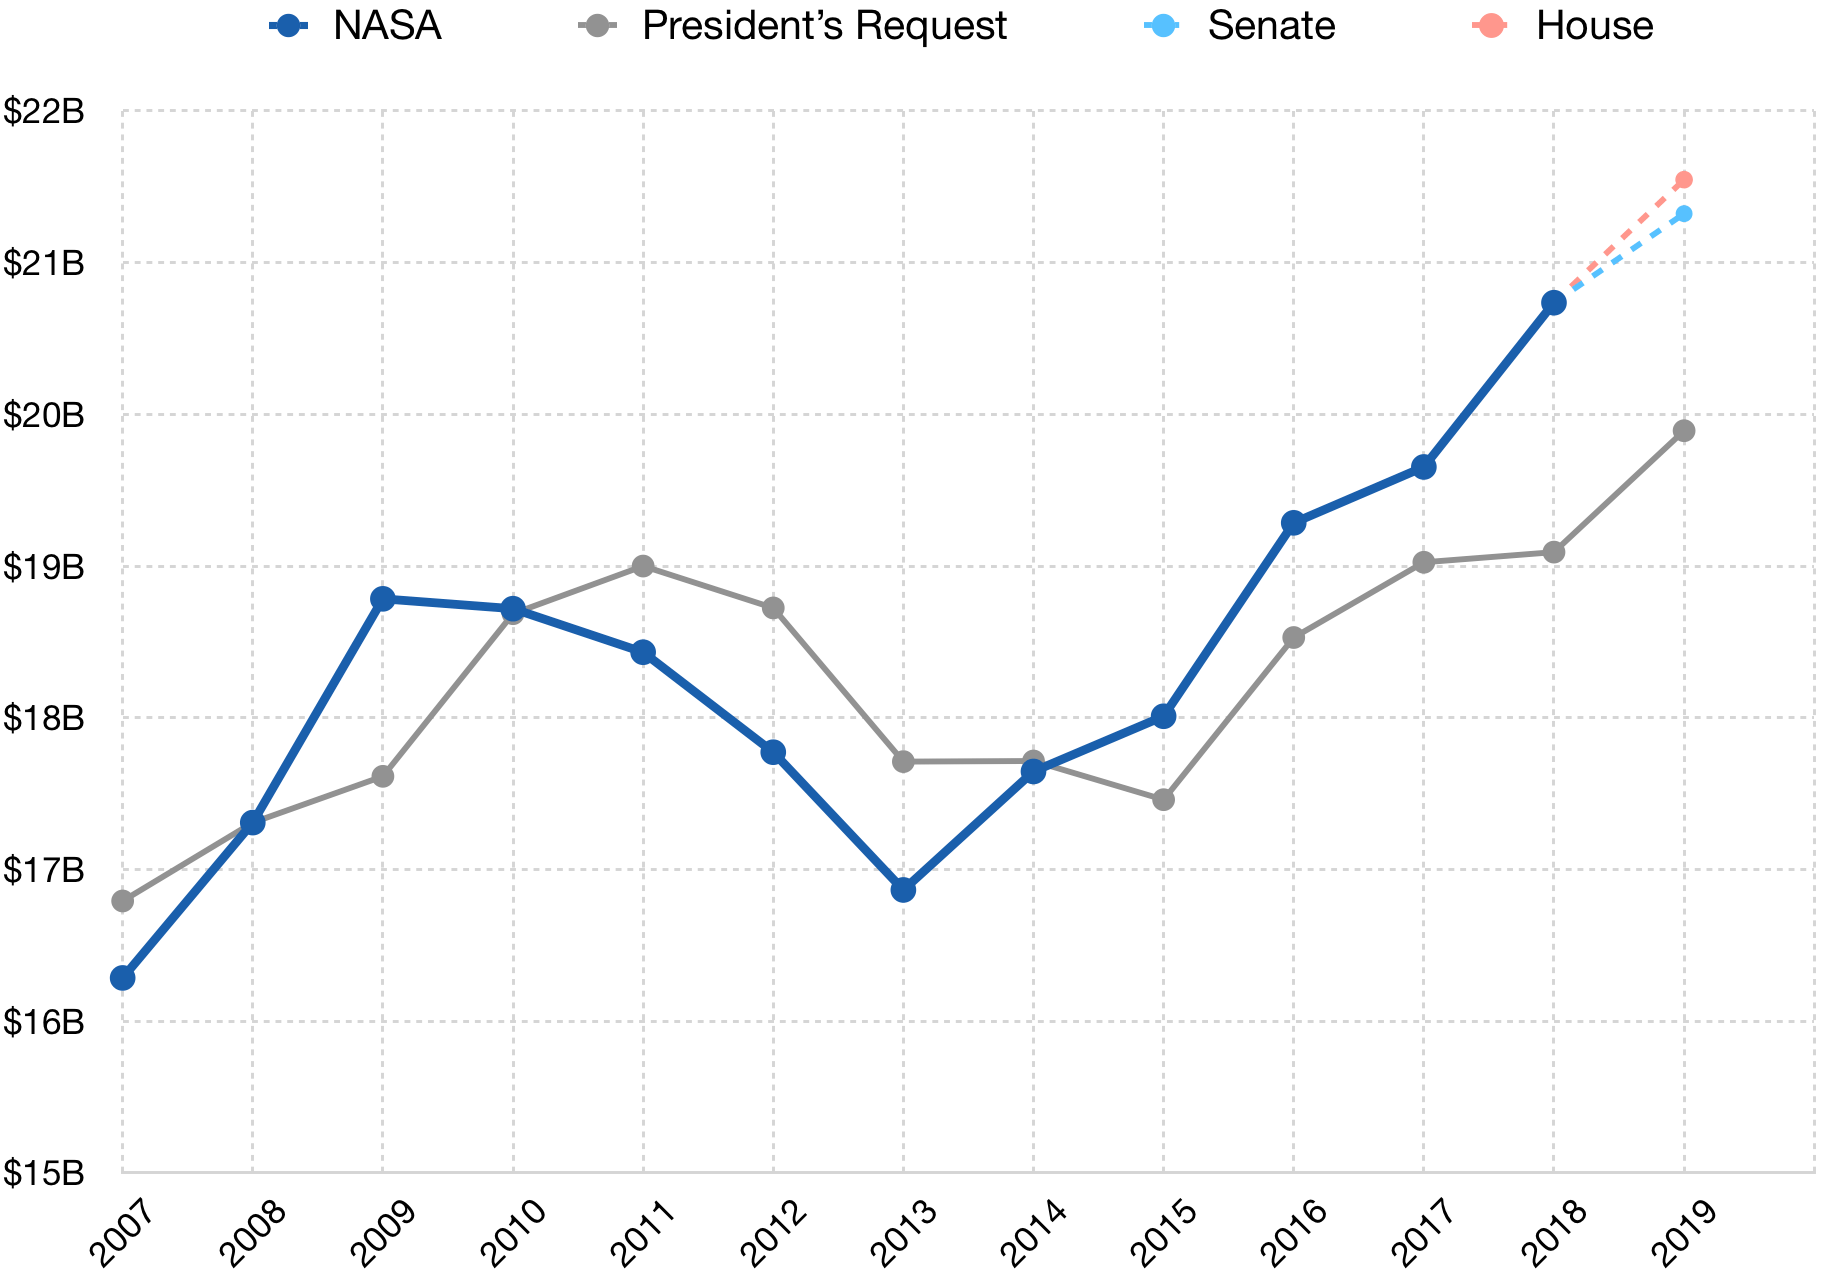 The Nasa Programs Most Impacted By The Budget Delay